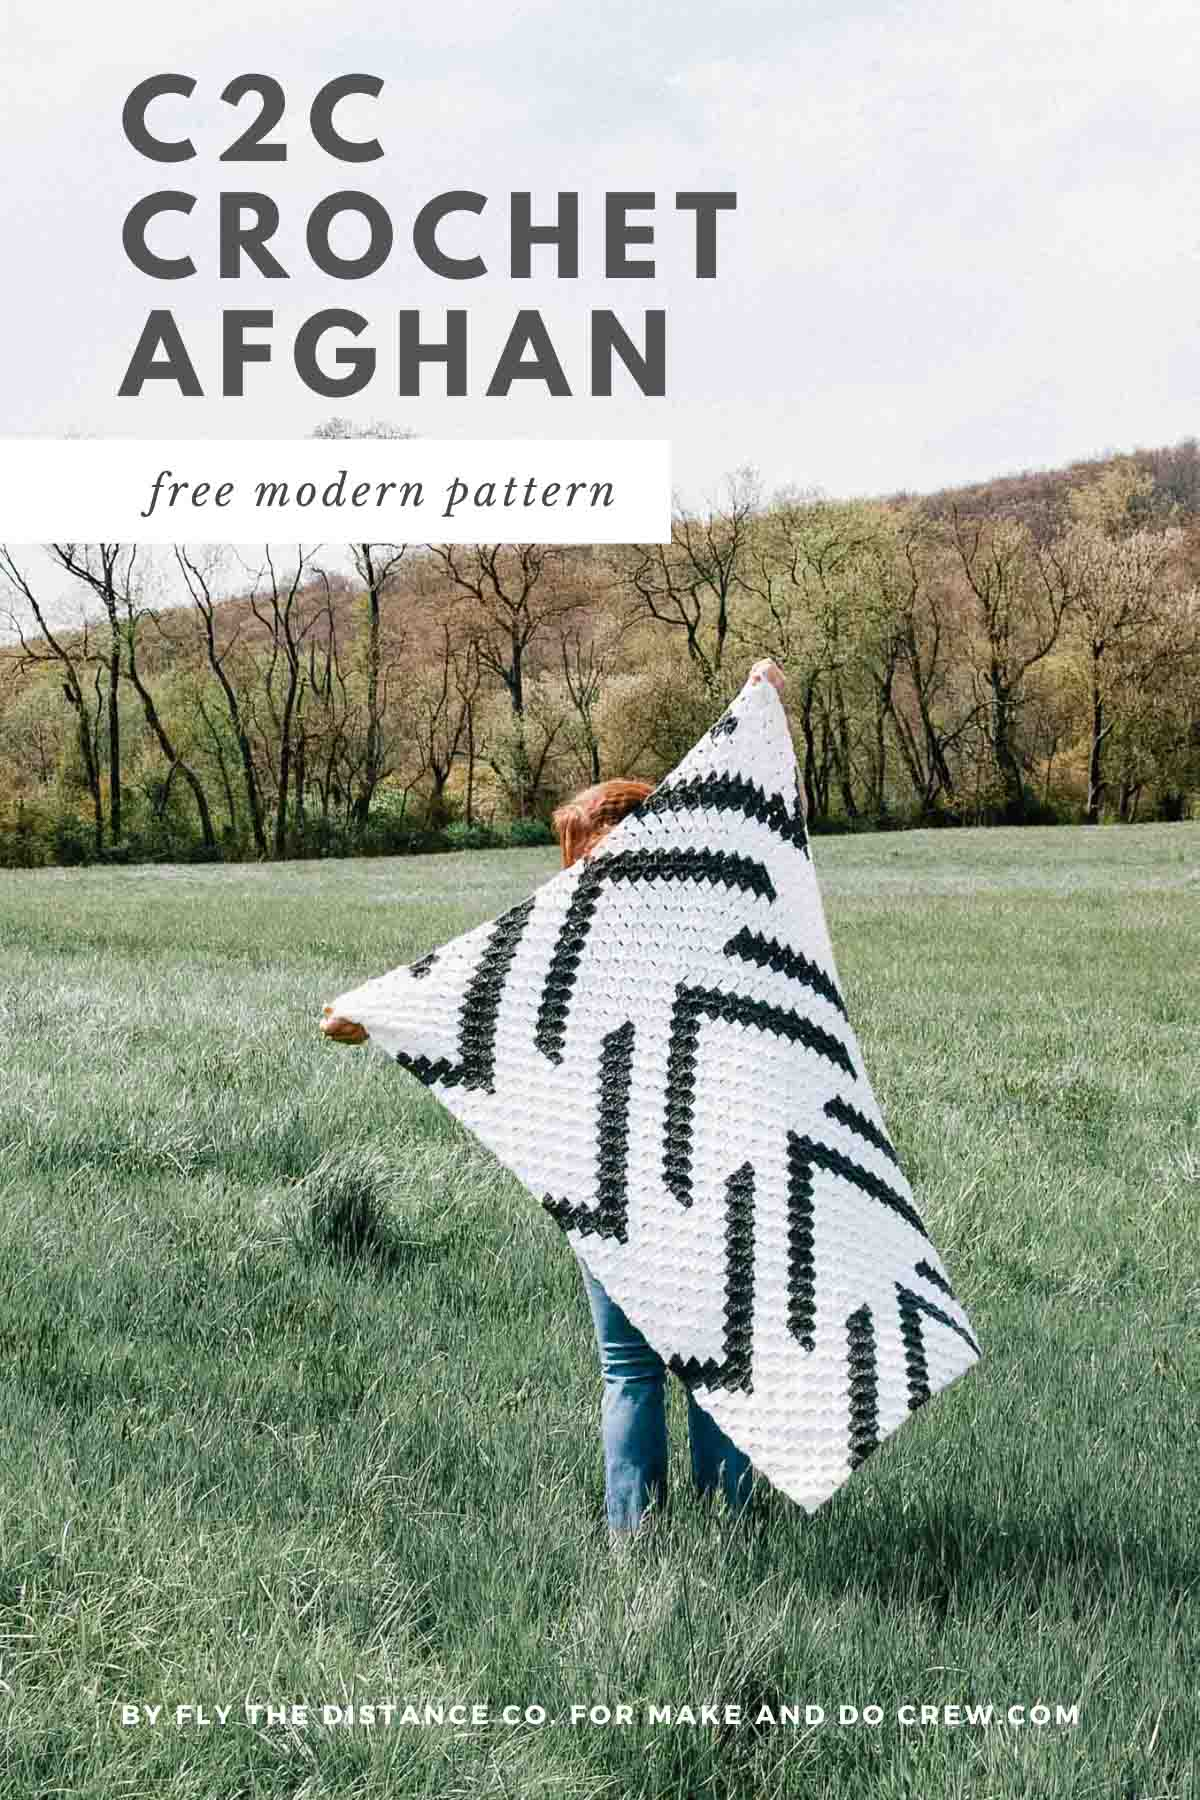 A woman in a field holding up a corner to corner crochet blanket with arrows on it.